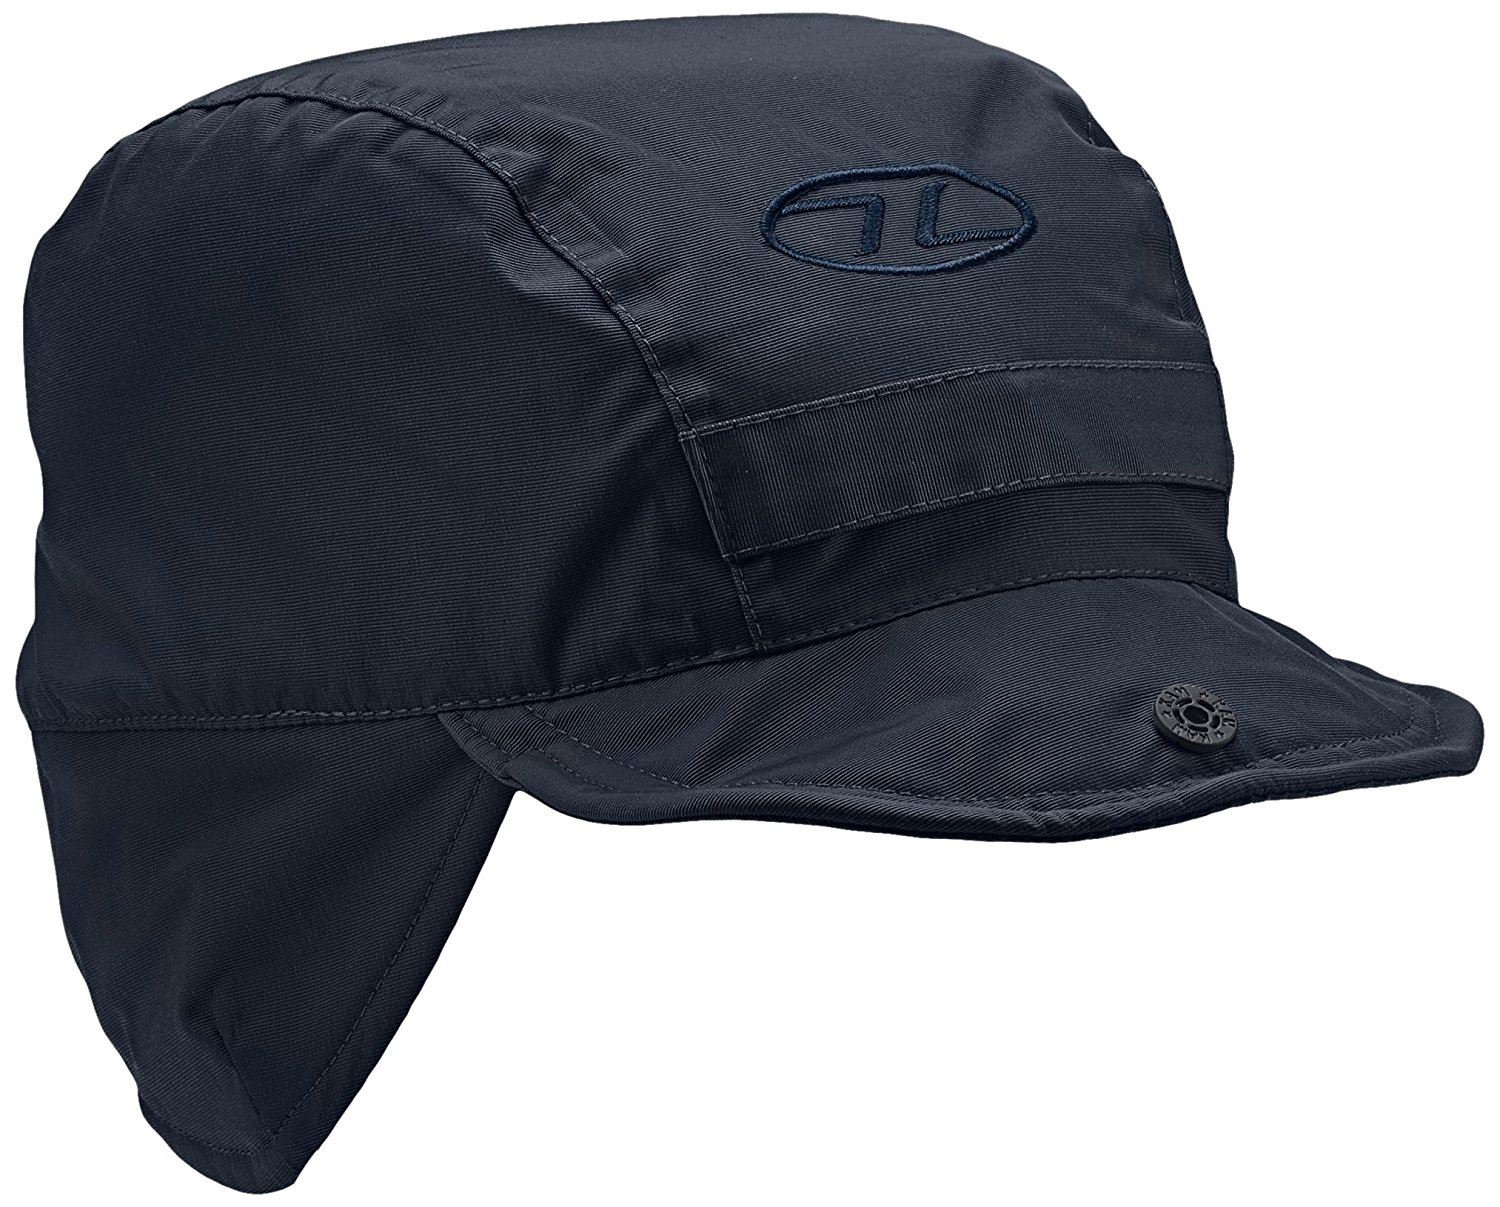 Highlander Black Water Resistant Breathable Outer Fleece Lined Mountain Hat